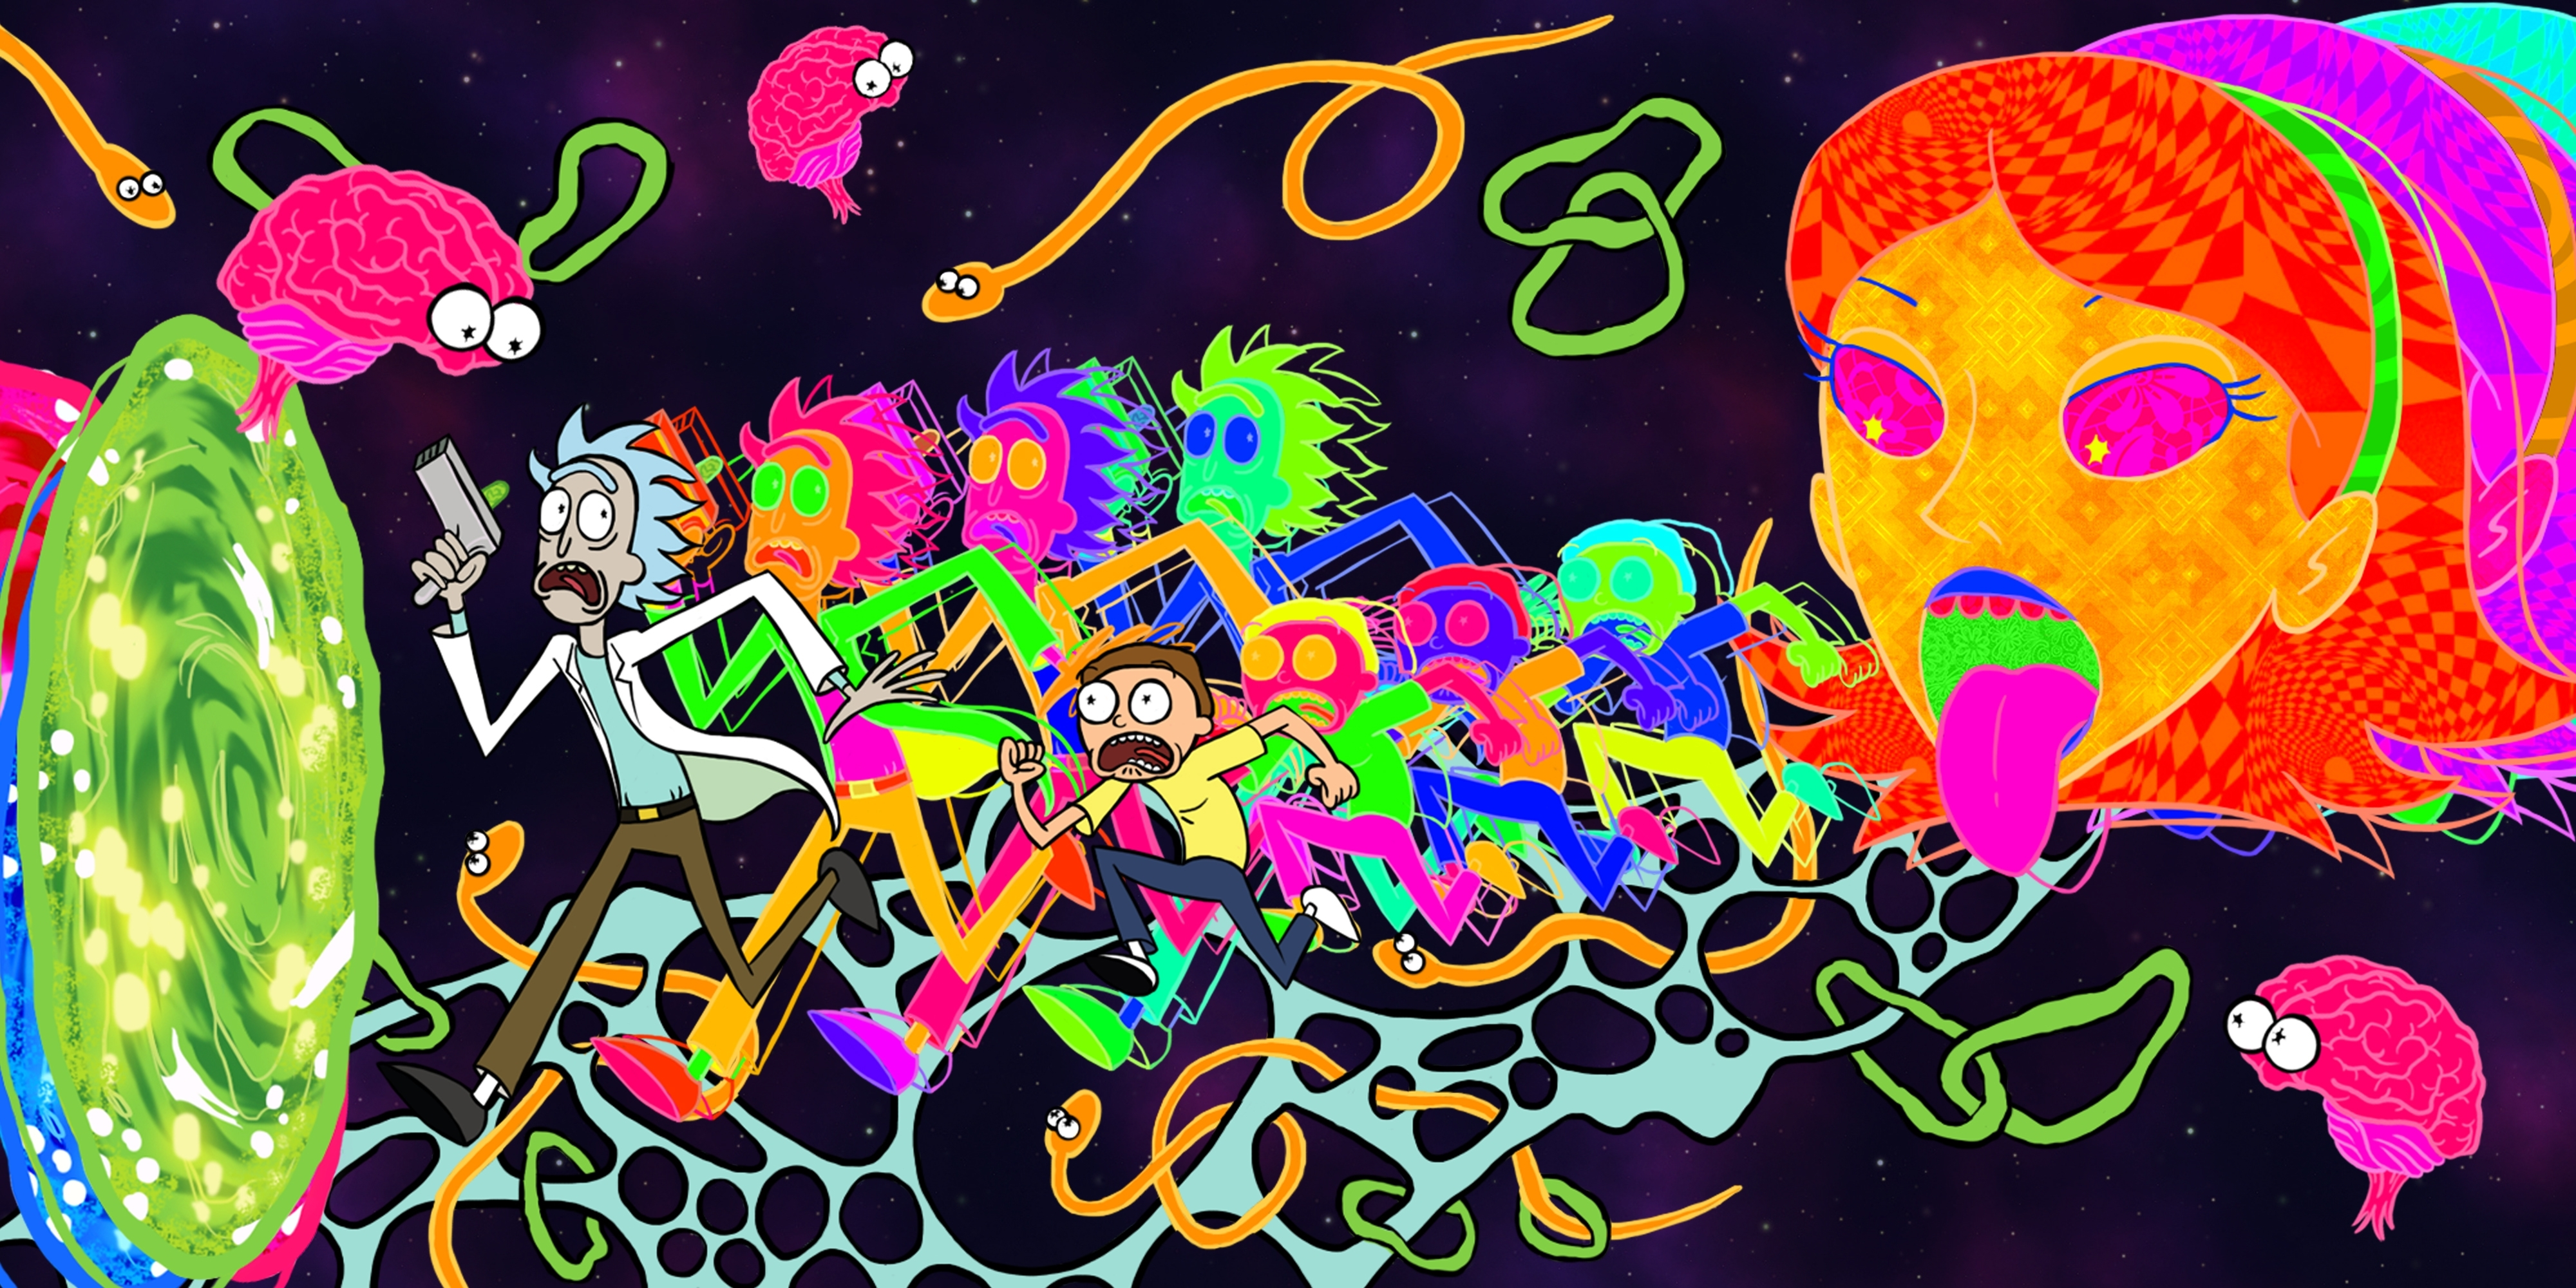 10 Top Trippy Rick And Morty Wallpaper FULL HD 1920×1080 For PC